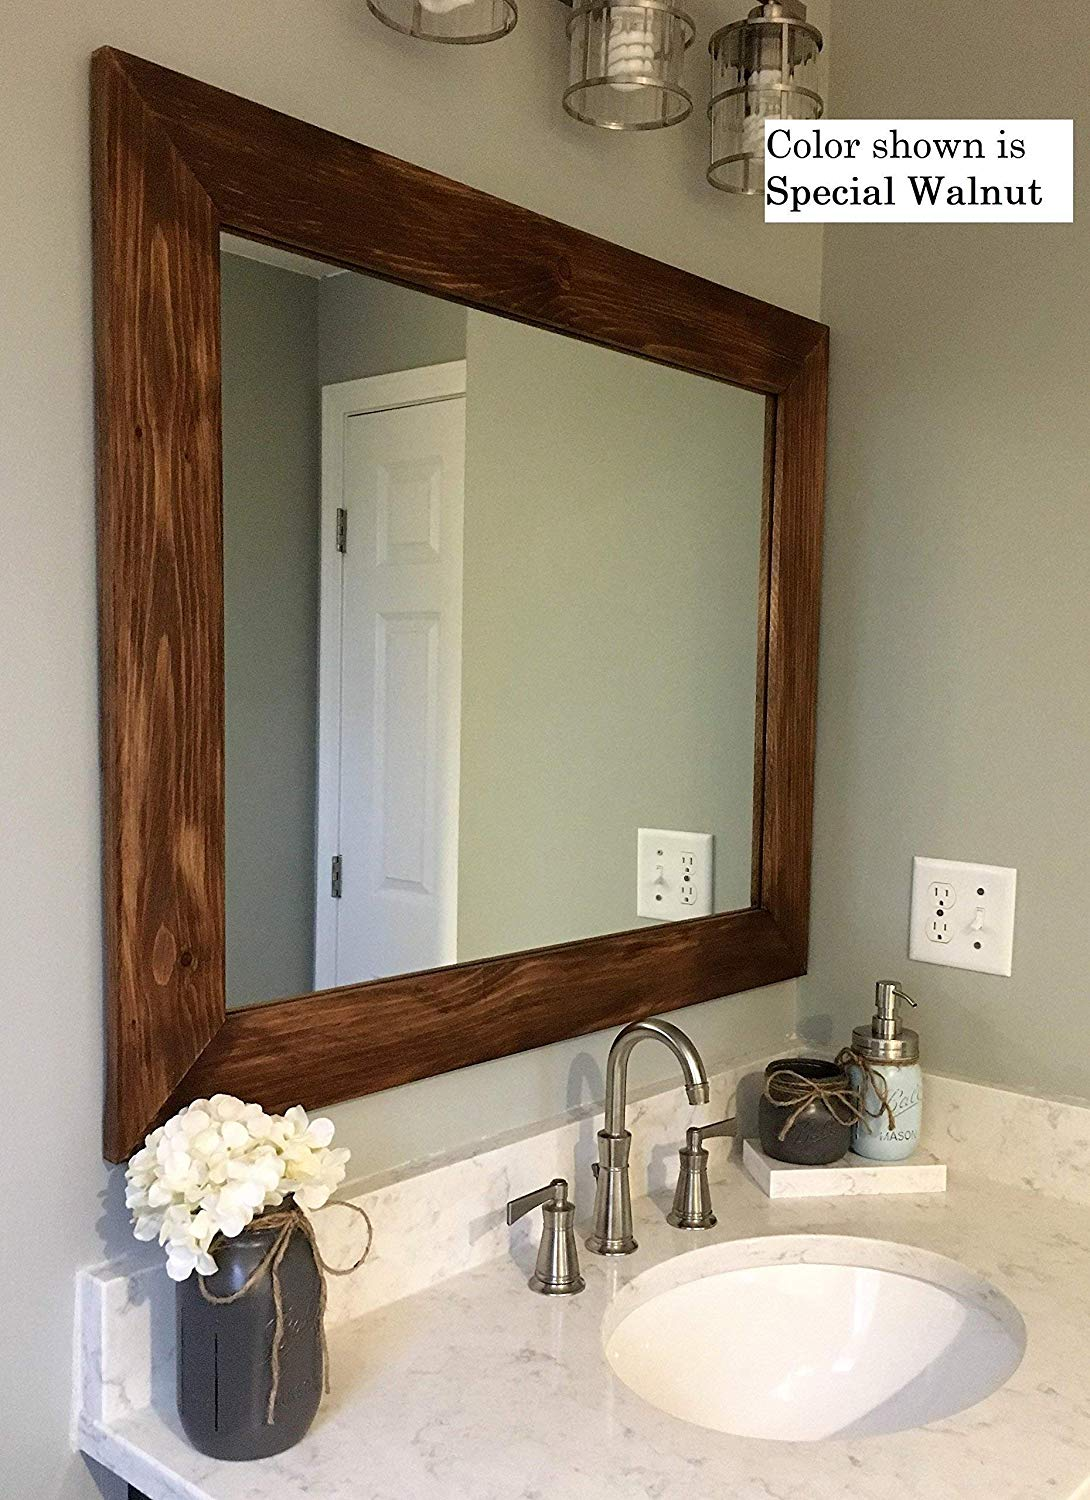 Cheap Bathroom Wooden Framed Mirror Find Bathroom Wooden Framed Mirror Deals On Line At Alibaba Com